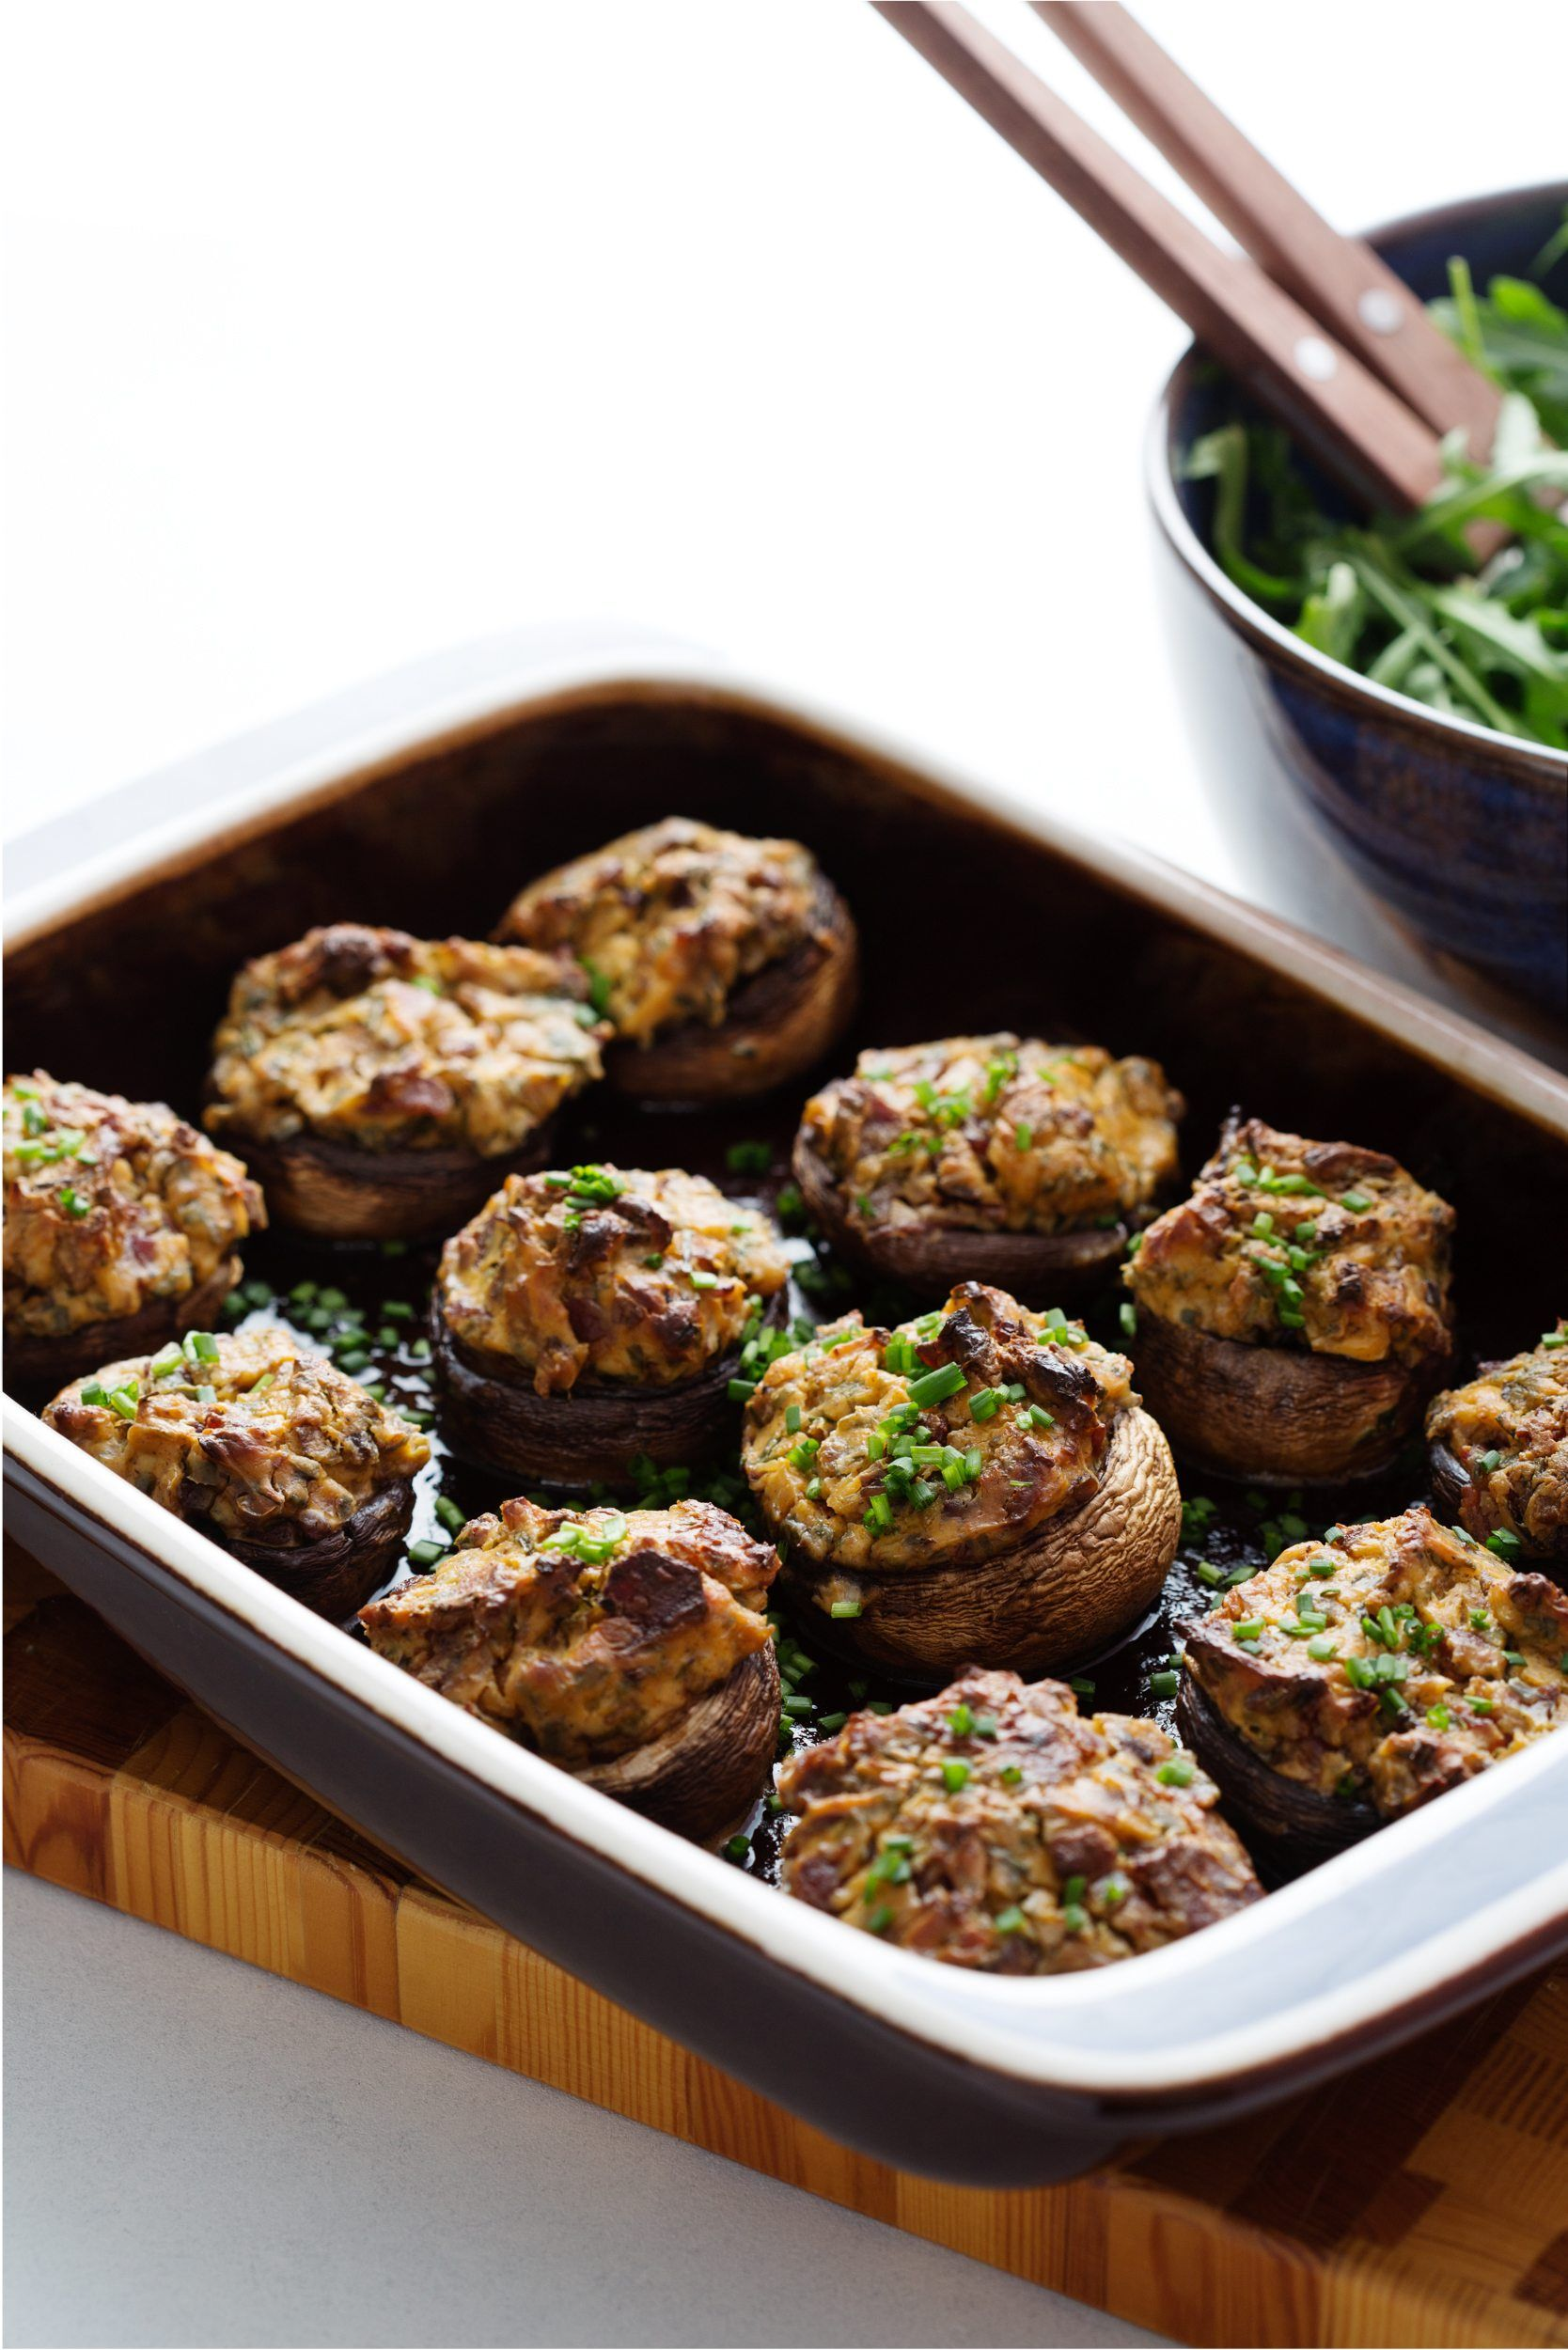 Can You Have Mushrooms On Ketogenic Diet